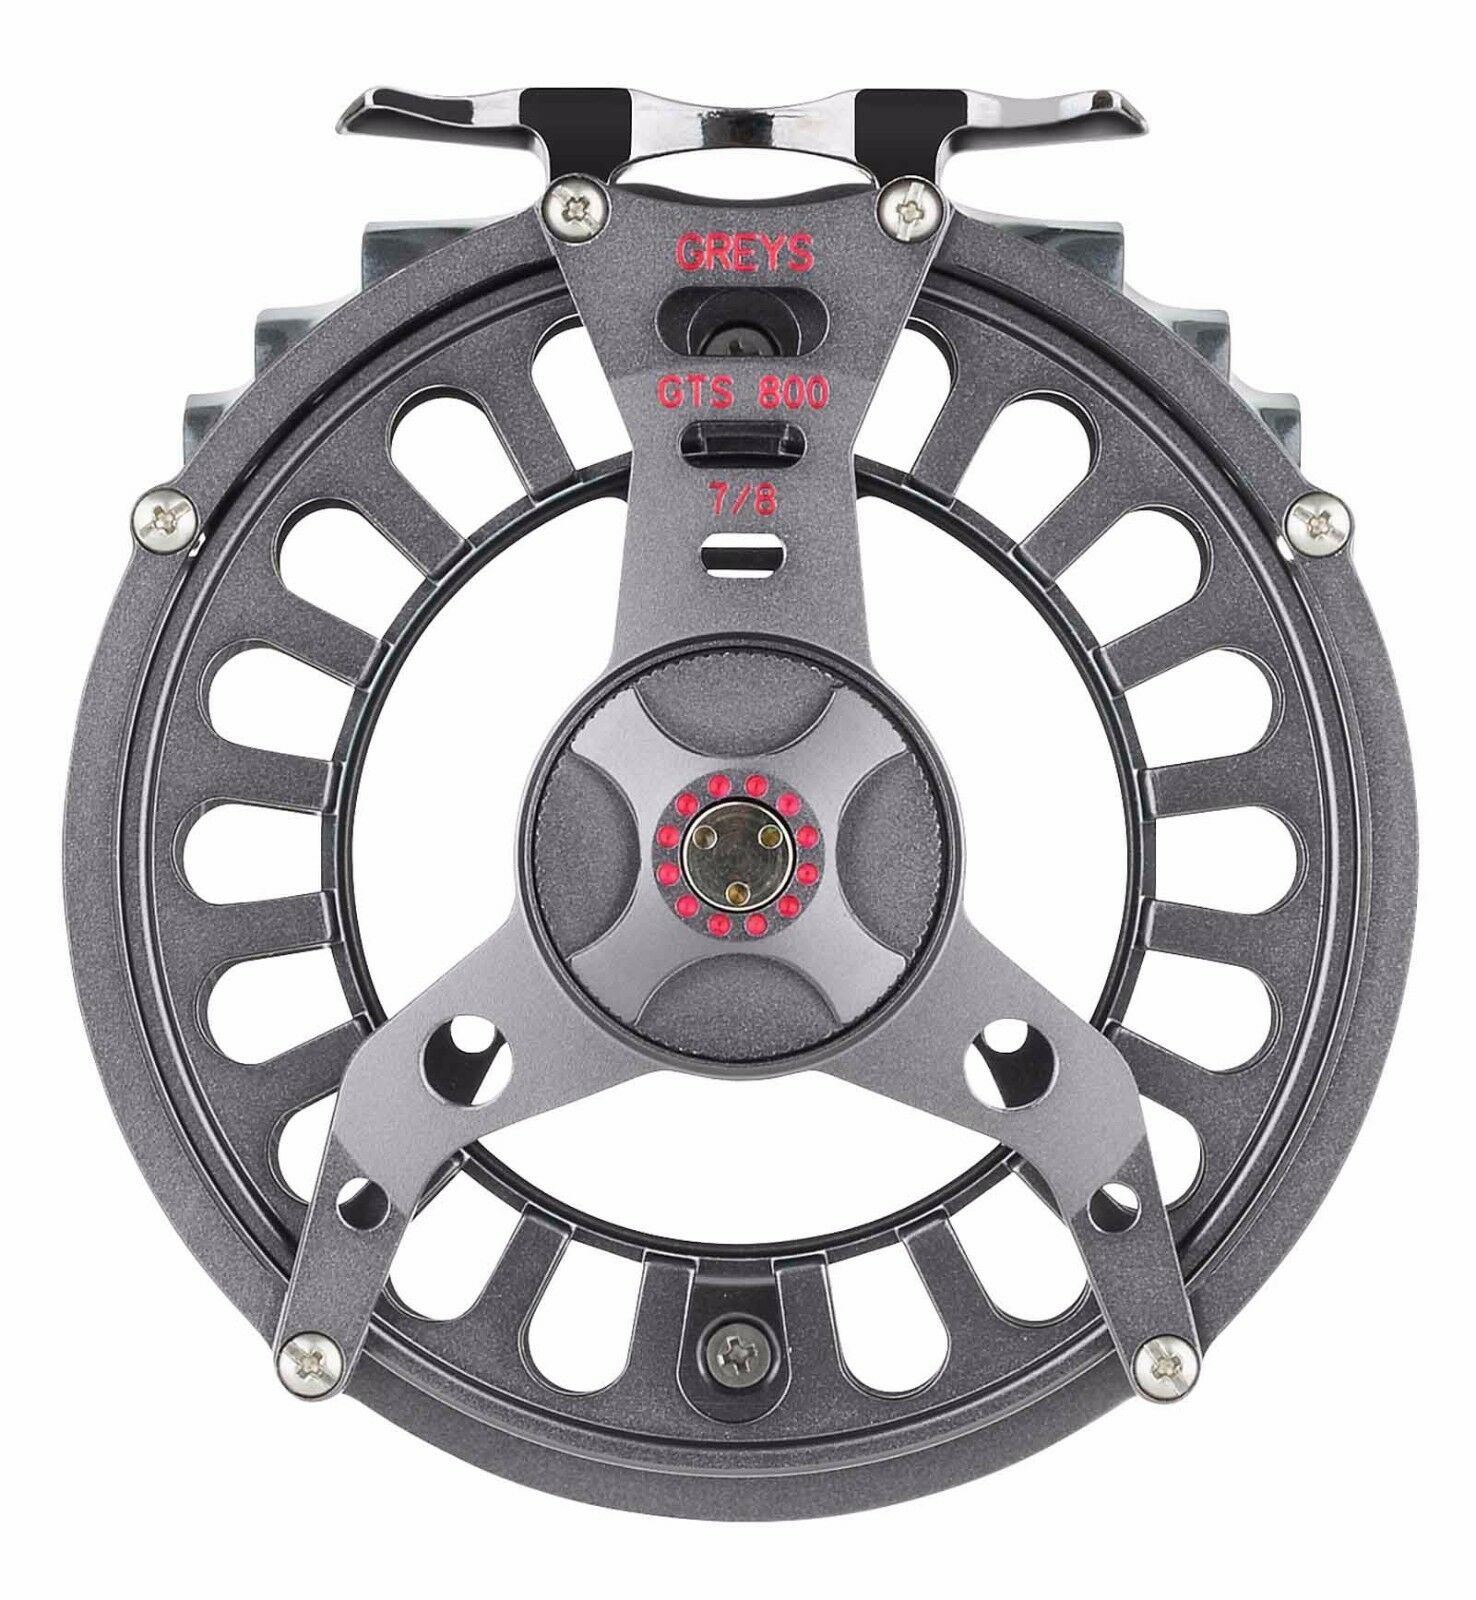 Greys GTS 800 Fly Reels - All Sizes -  Game Fishing Reel  after-sale protection